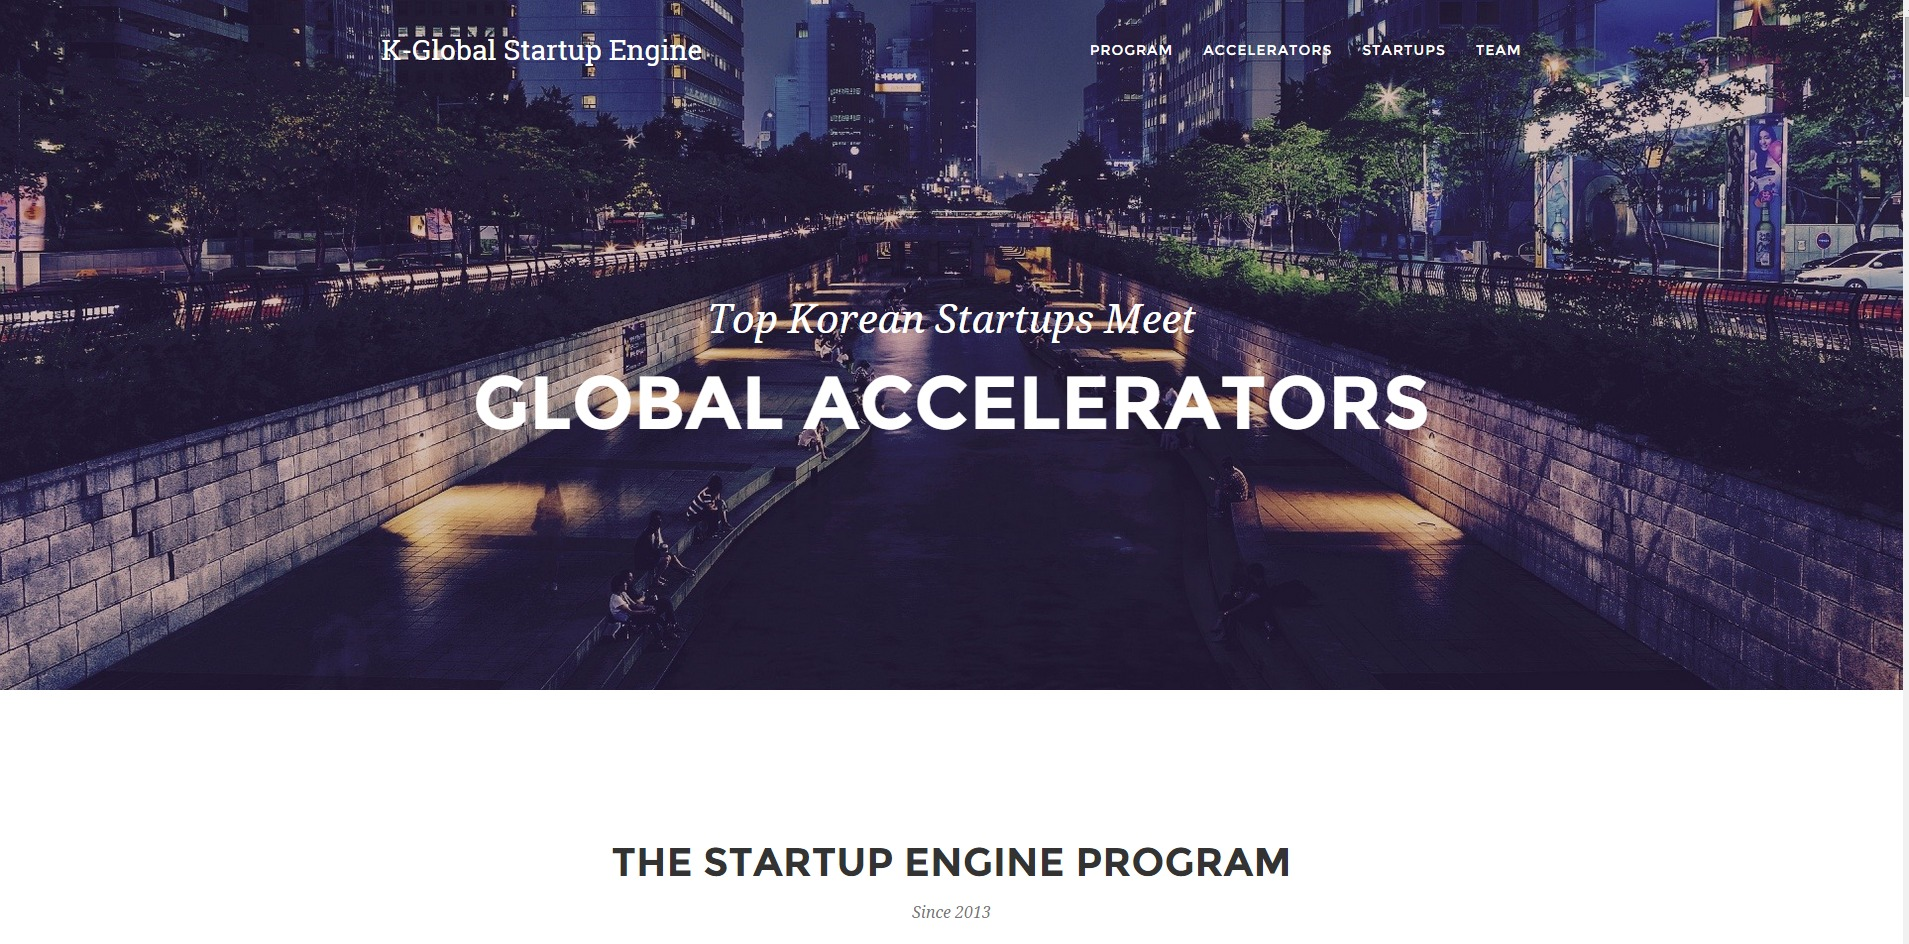 K Global Startup Engine